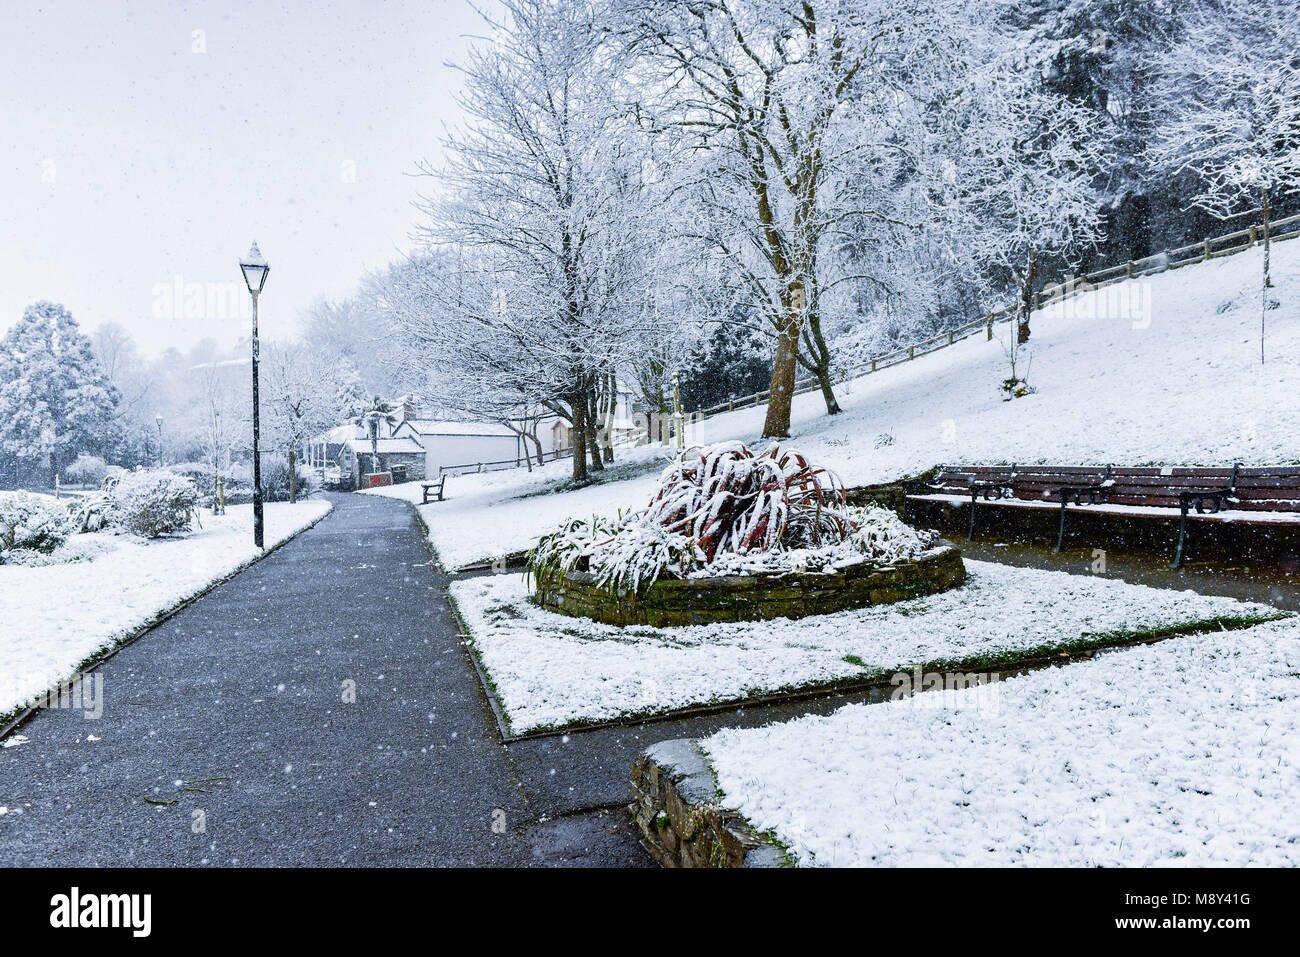 Snowing in Trenance Gardens in Newquay Cornwall. - Stock Image